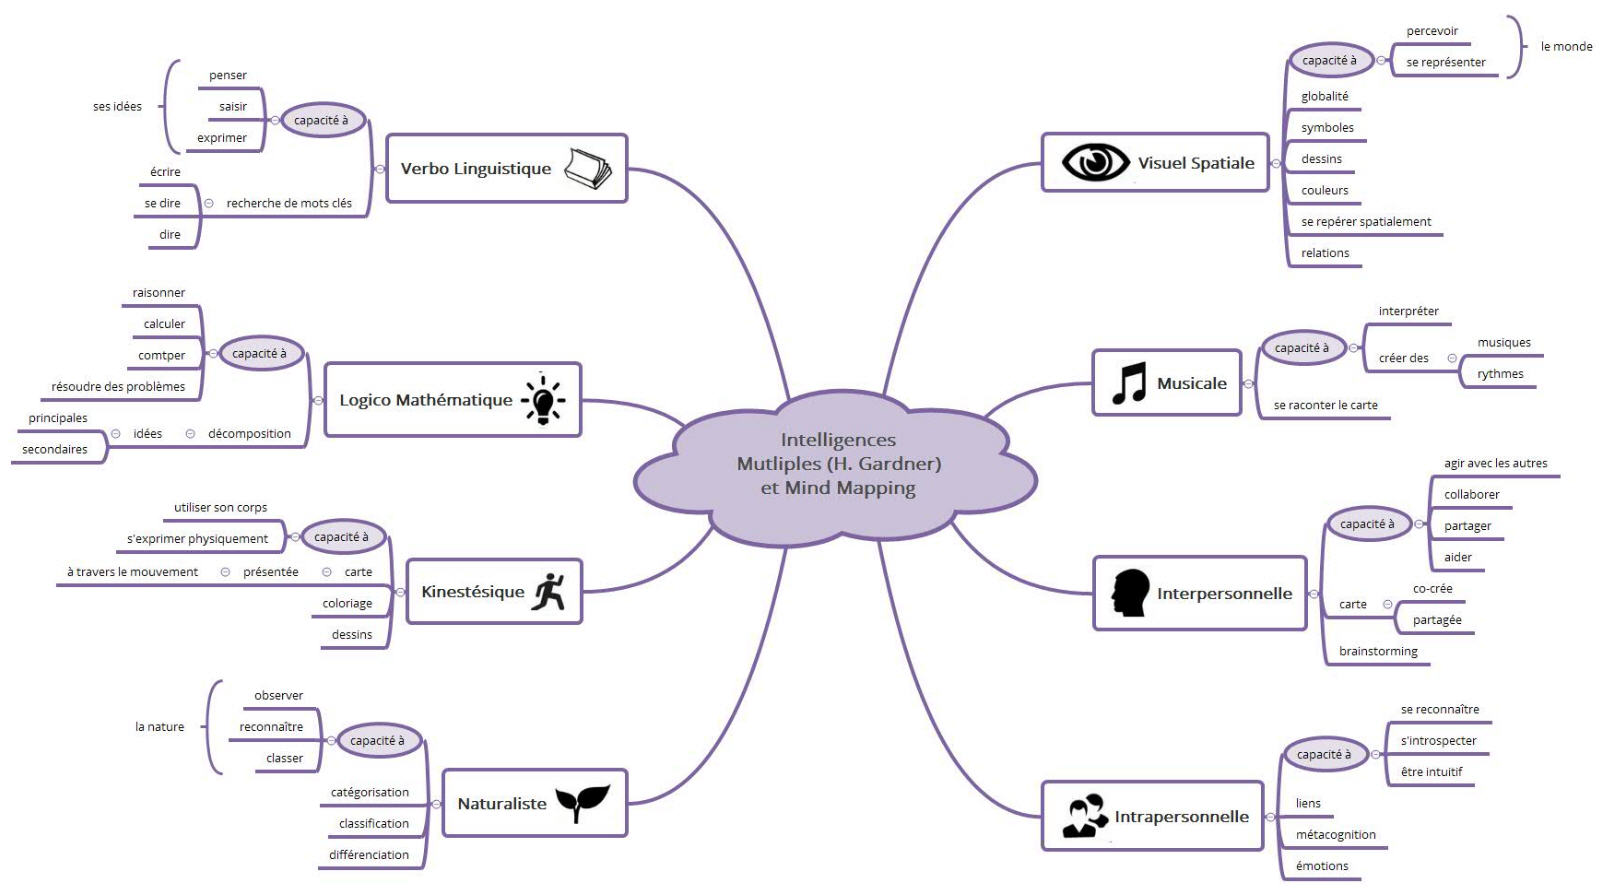 Intelligences Mutliples (H. Gardner) et Mind Mapping